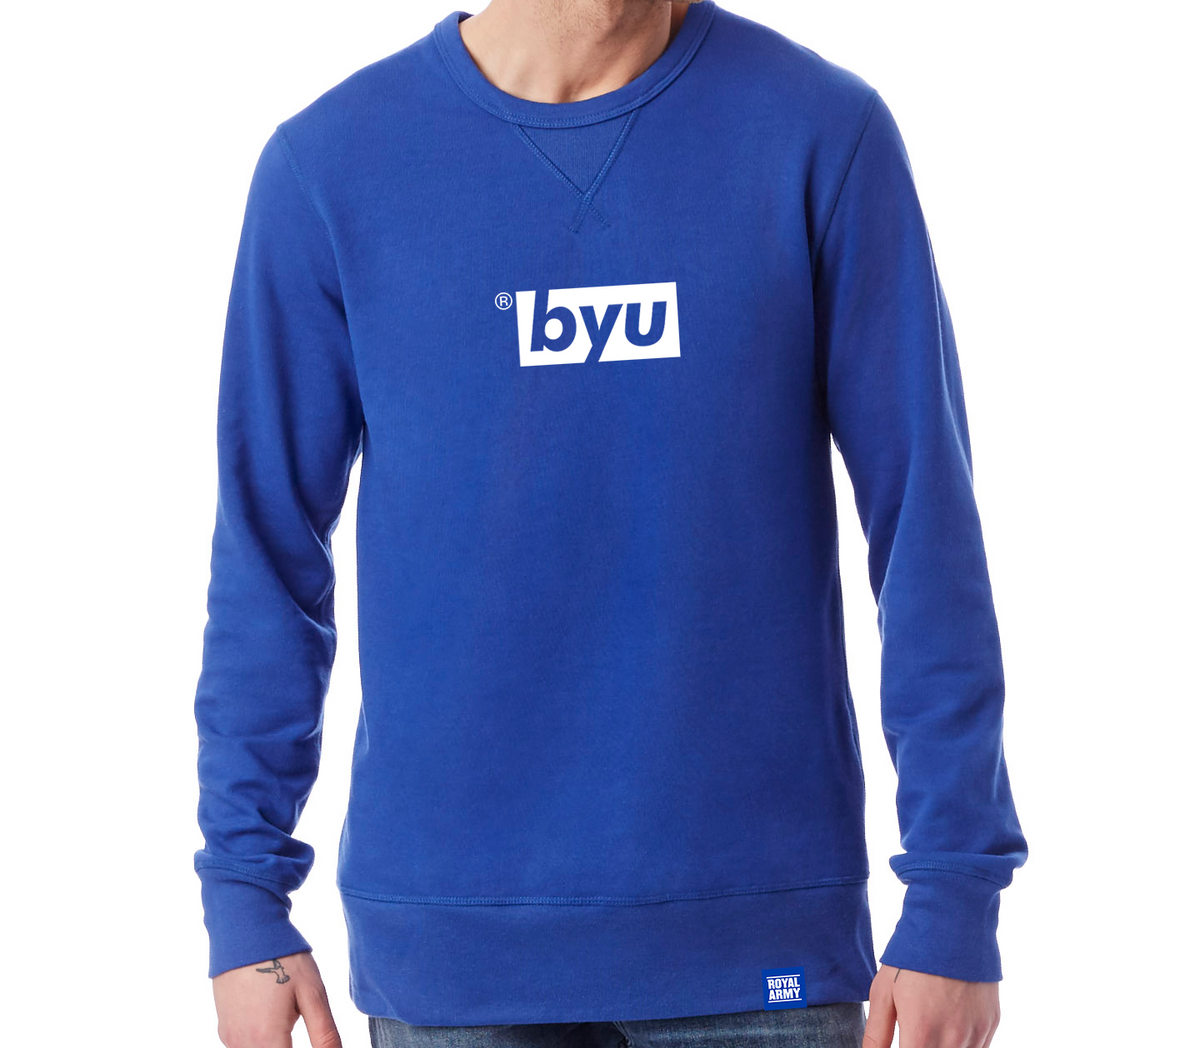 Box BYU Crew Sweatshirt